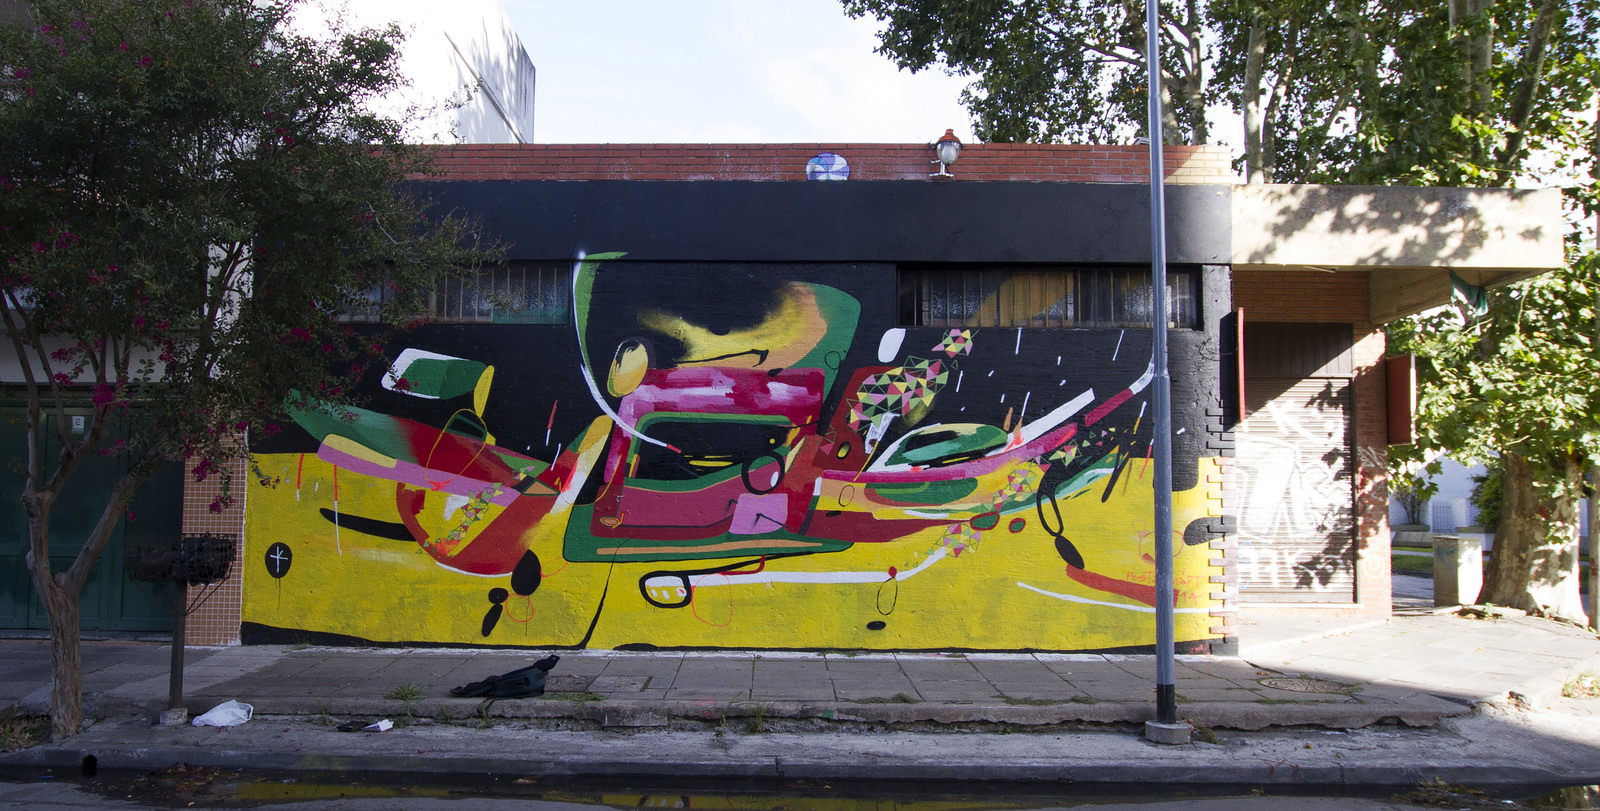 poeta-mart-new-mural-in-buenos-aires-argentina-01